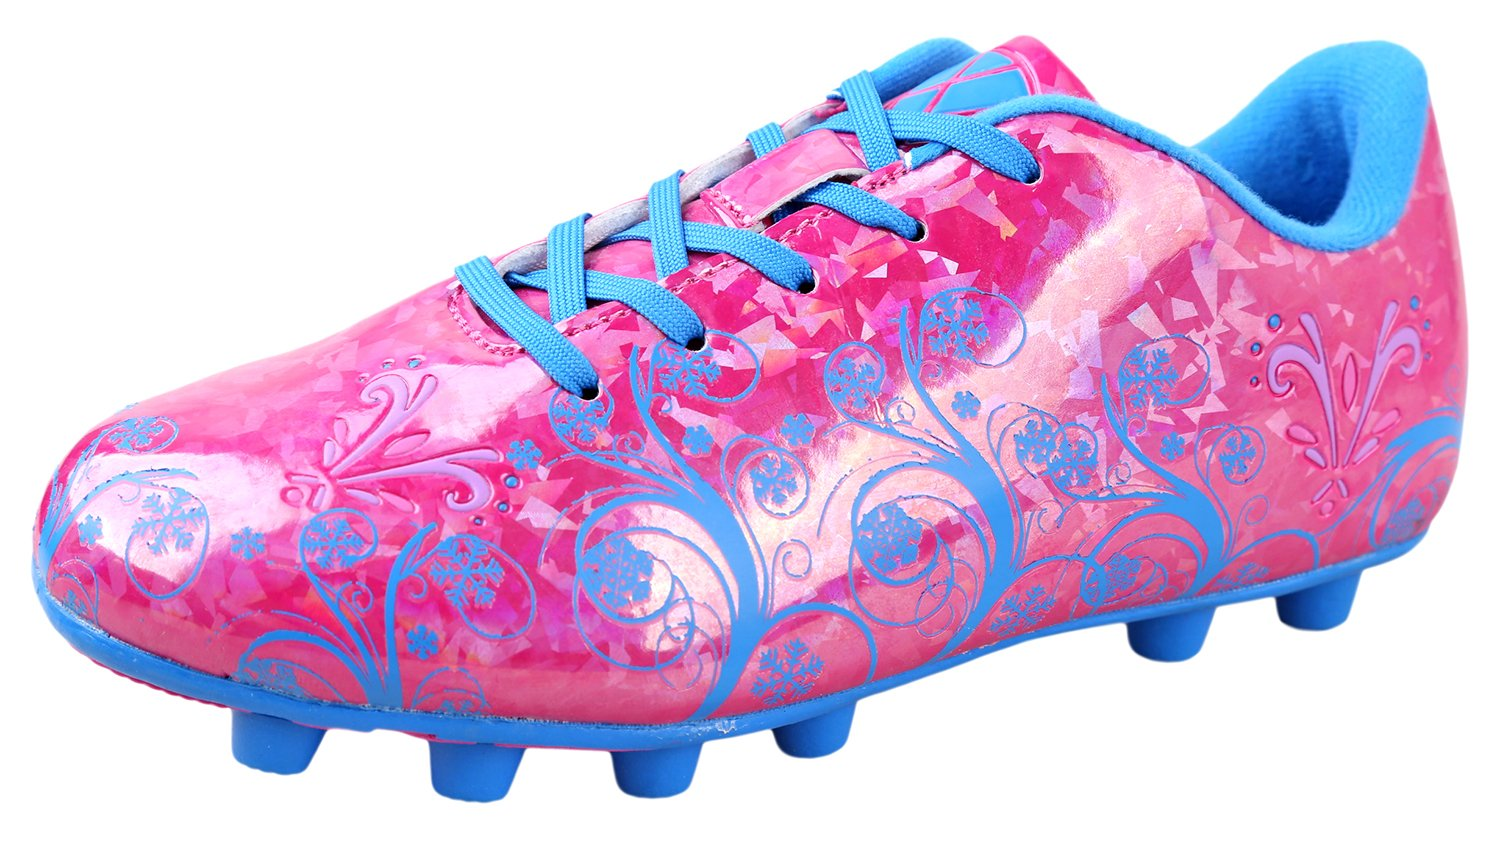 Vizari Youth/Jr Frost FG Soccer Cleats | Soccer Cleats Girls | Kids Soccer Cleats | Outoor Soccer Shoes | Pink/Blue 12.5